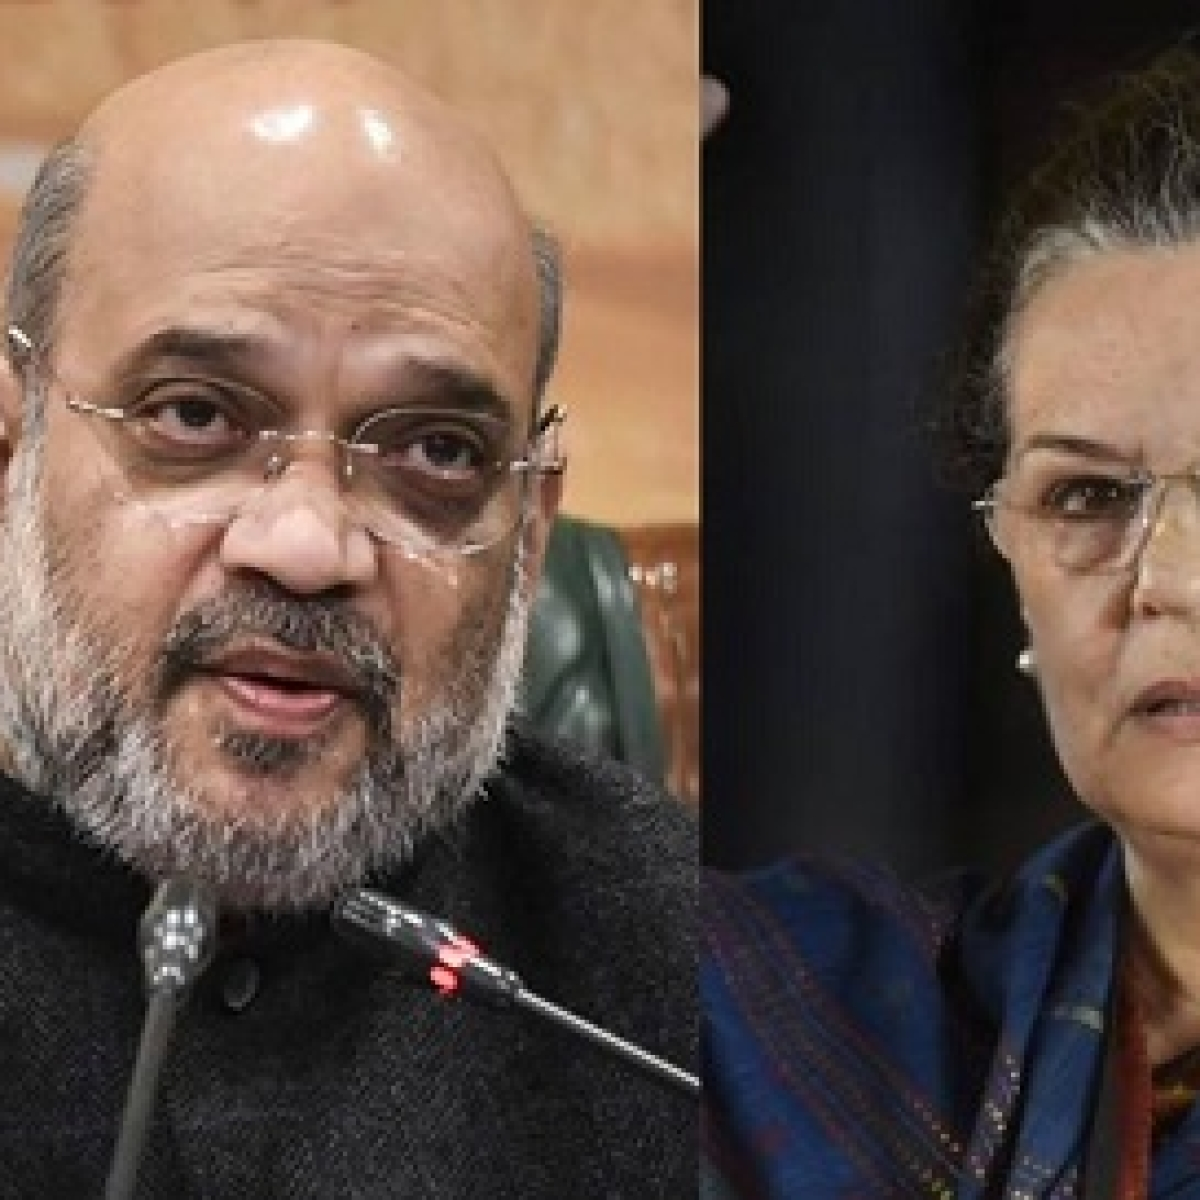 Amid COVID-19 pandemic, Amit Shah surfaces to accuse Congress' 'petty politics'